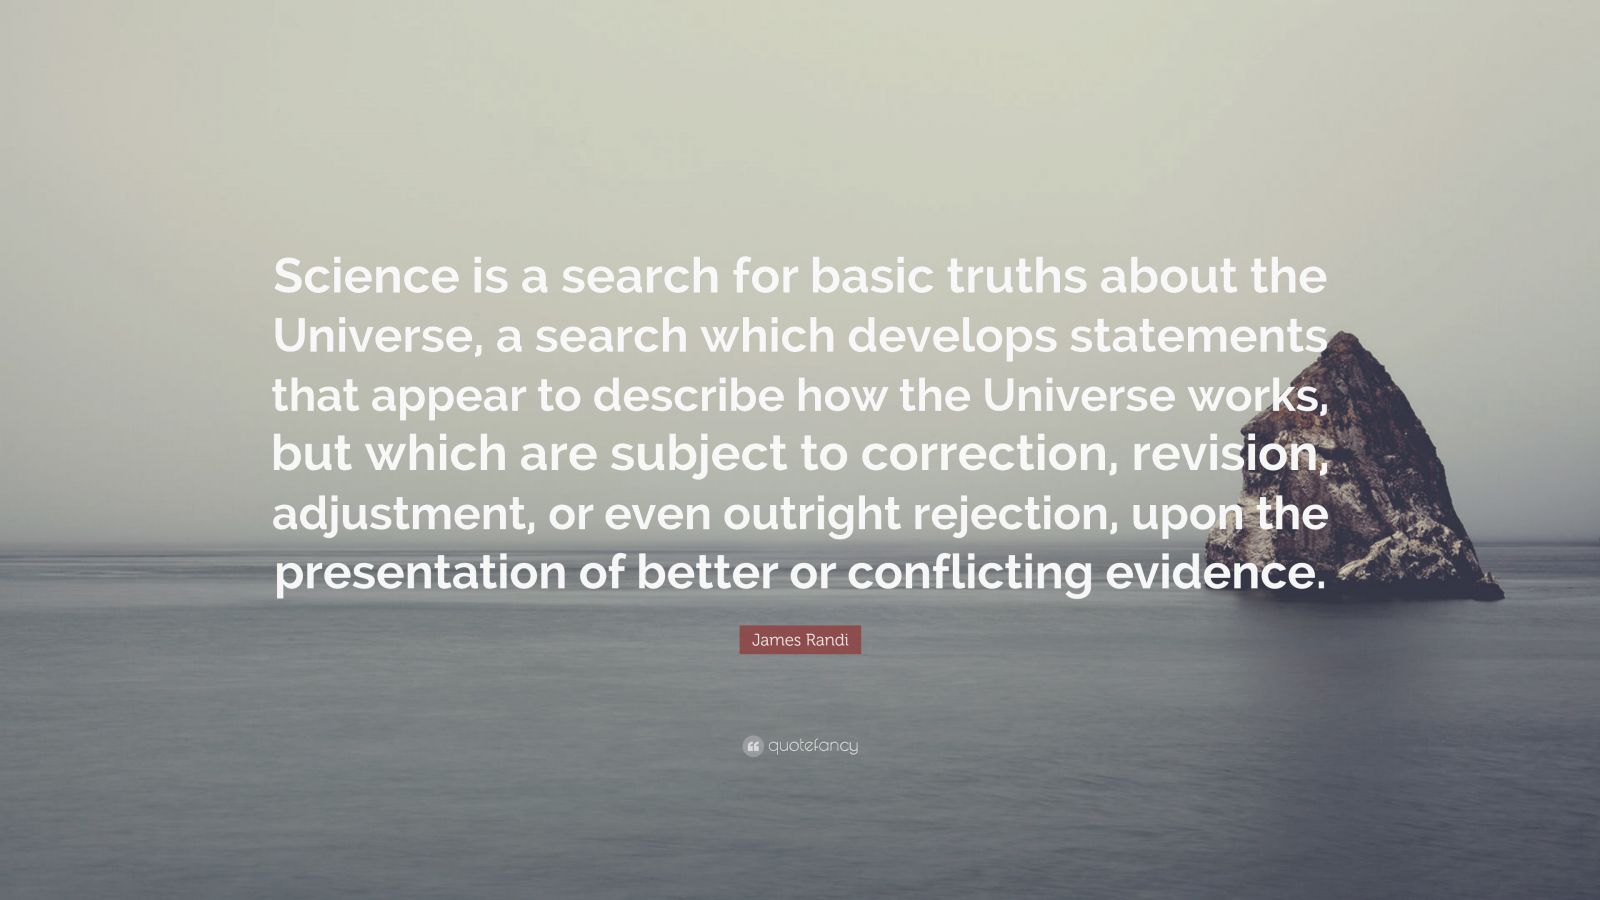 """James Randi Quote: """"Science is a search for basic truths about the Universe, a search which develops statements that appear to describe how the Universe works, but which are subject to correction, revision, adjustment, or even outright rejection, upon the presentation of better or conflicting evidence."""""""